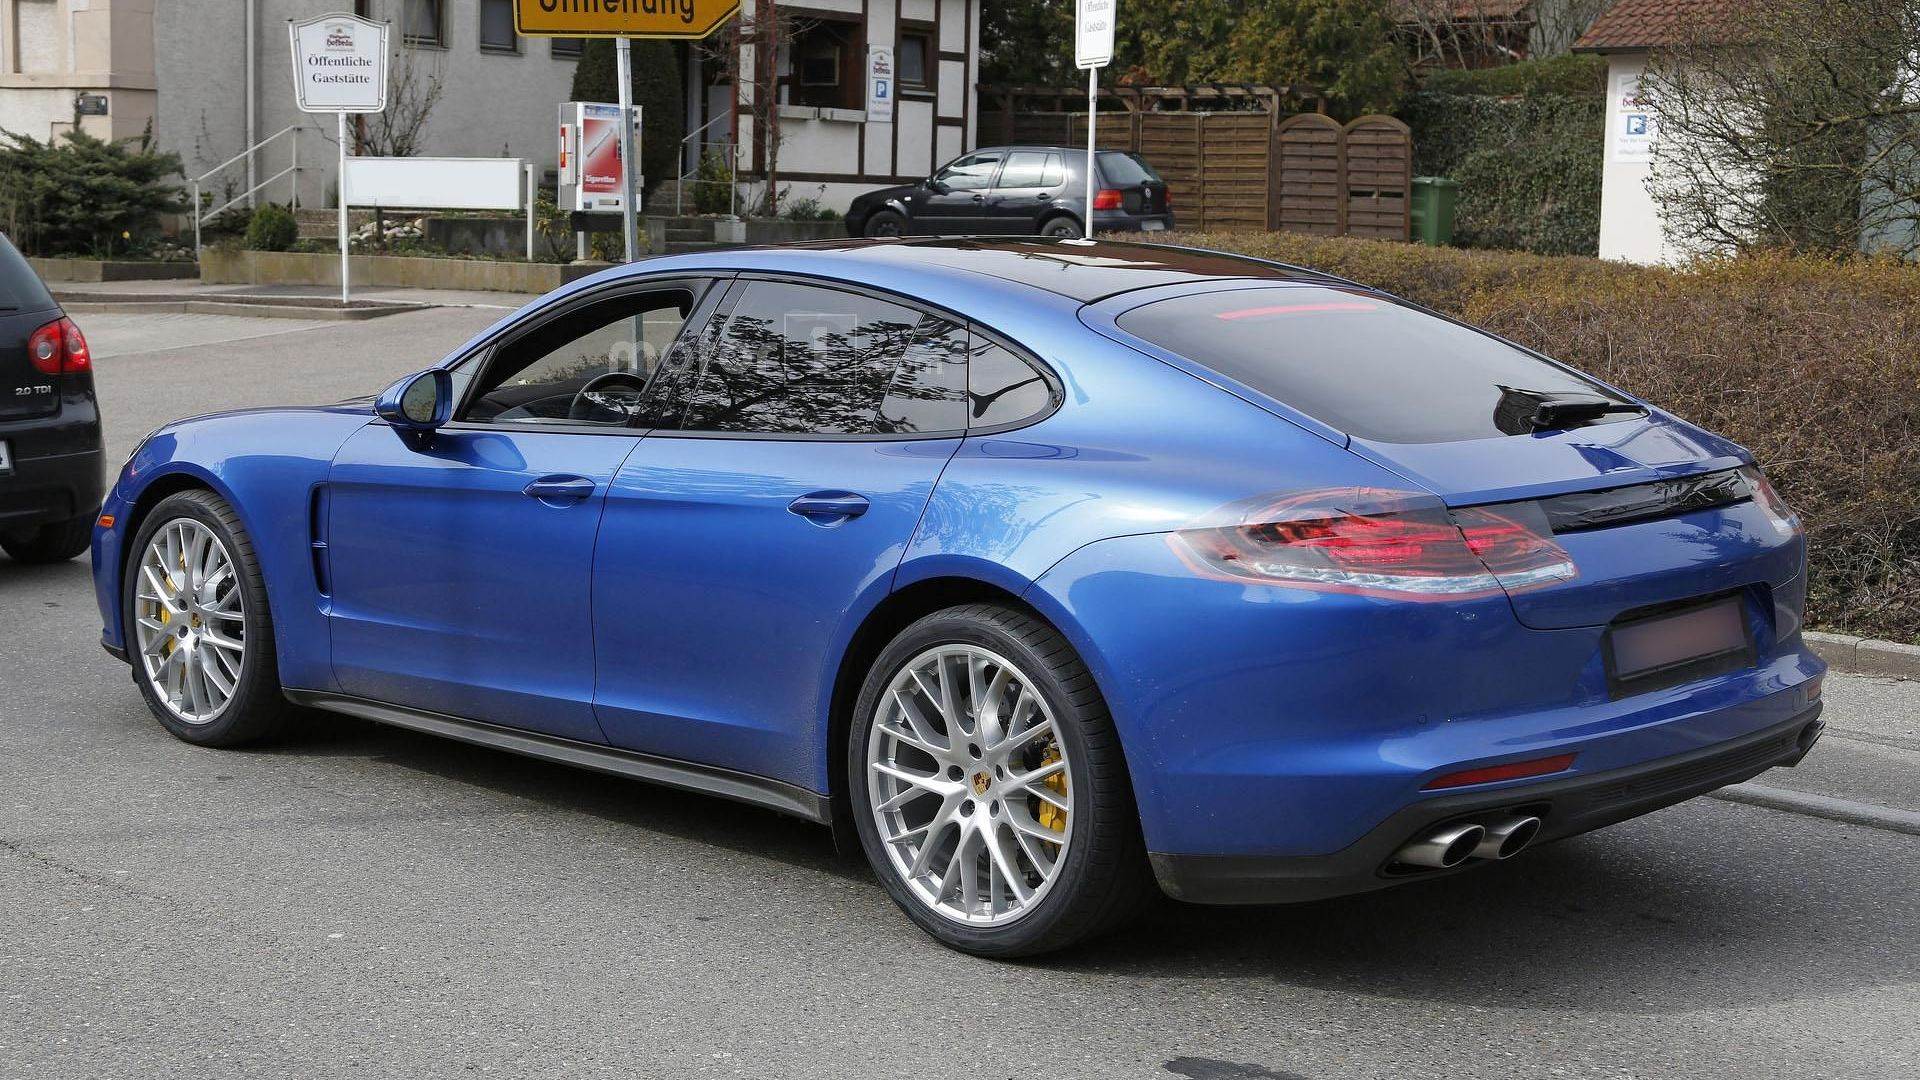 2017 porsche panamera turbo spied alongside the standard model. Black Bedroom Furniture Sets. Home Design Ideas